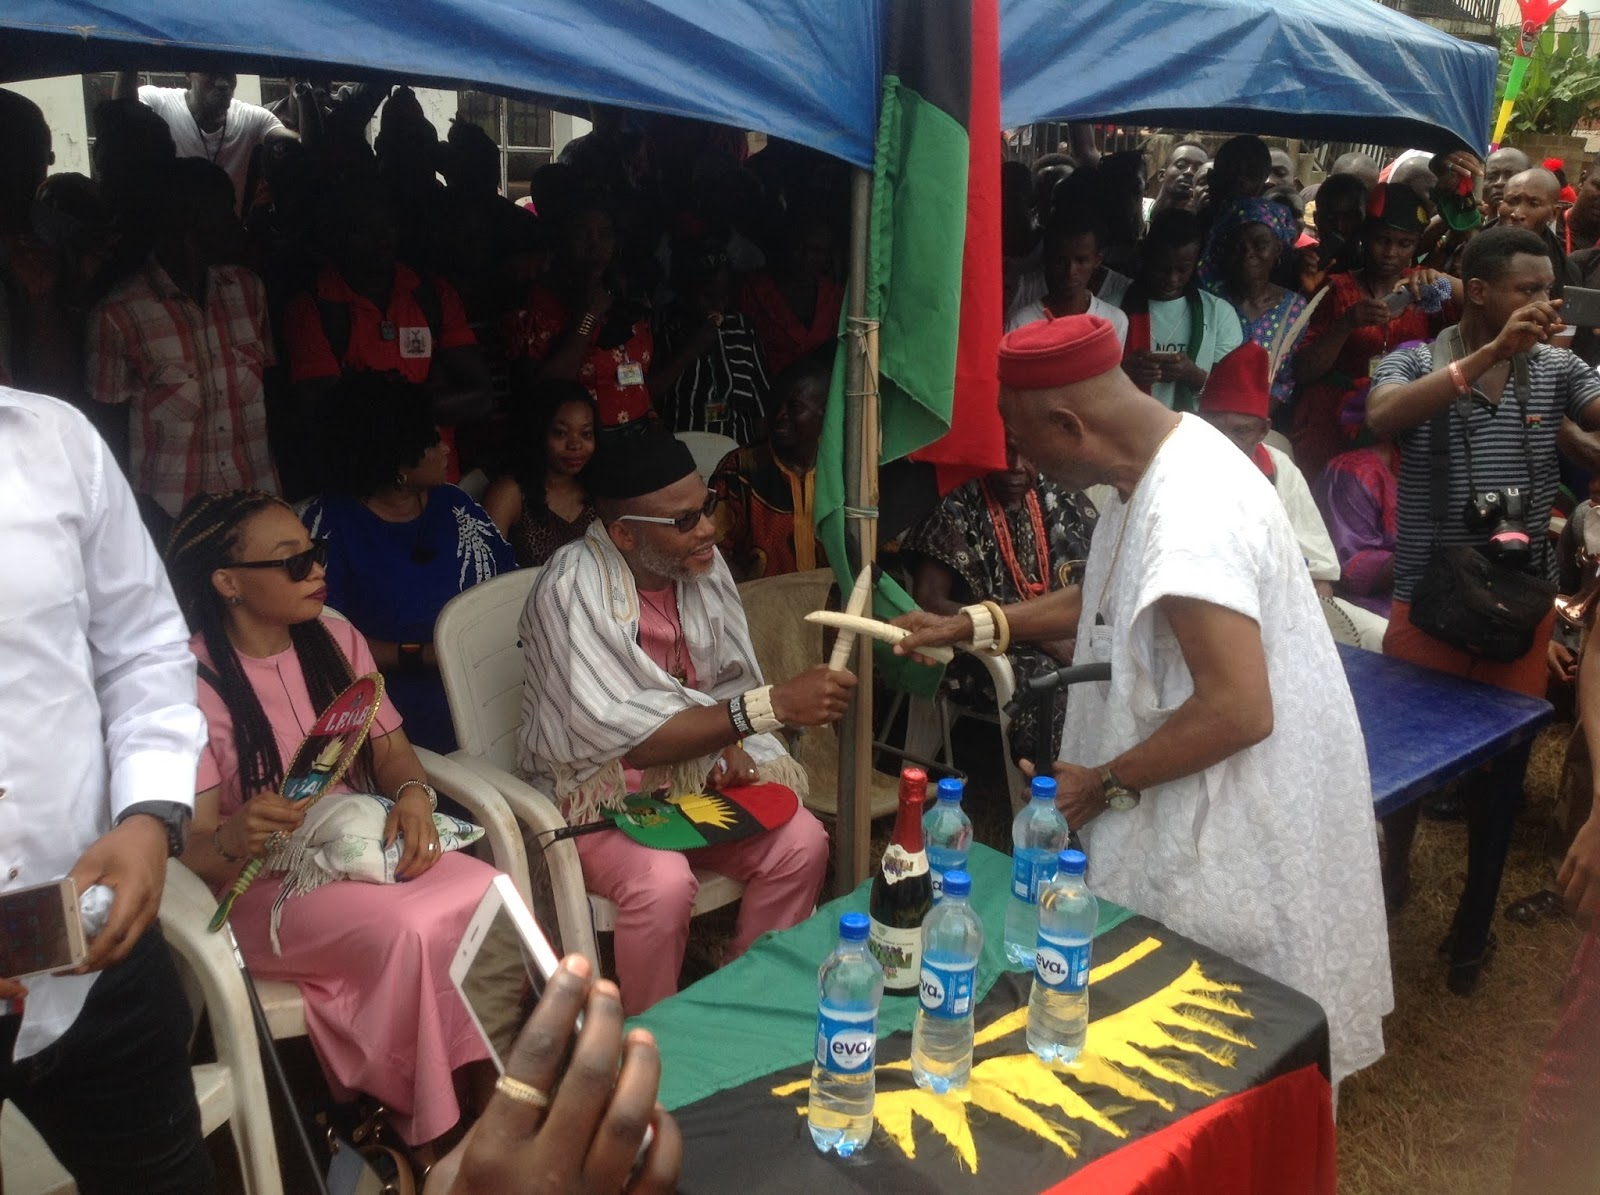 Nnamdi kanu insults tradition sits to greet adama nri numero une that but for one thing nnamdi kanu would have attracted the wrath of kingmakers in nri kingdom as he sat while exchanging greetings with adama nri m4hsunfo